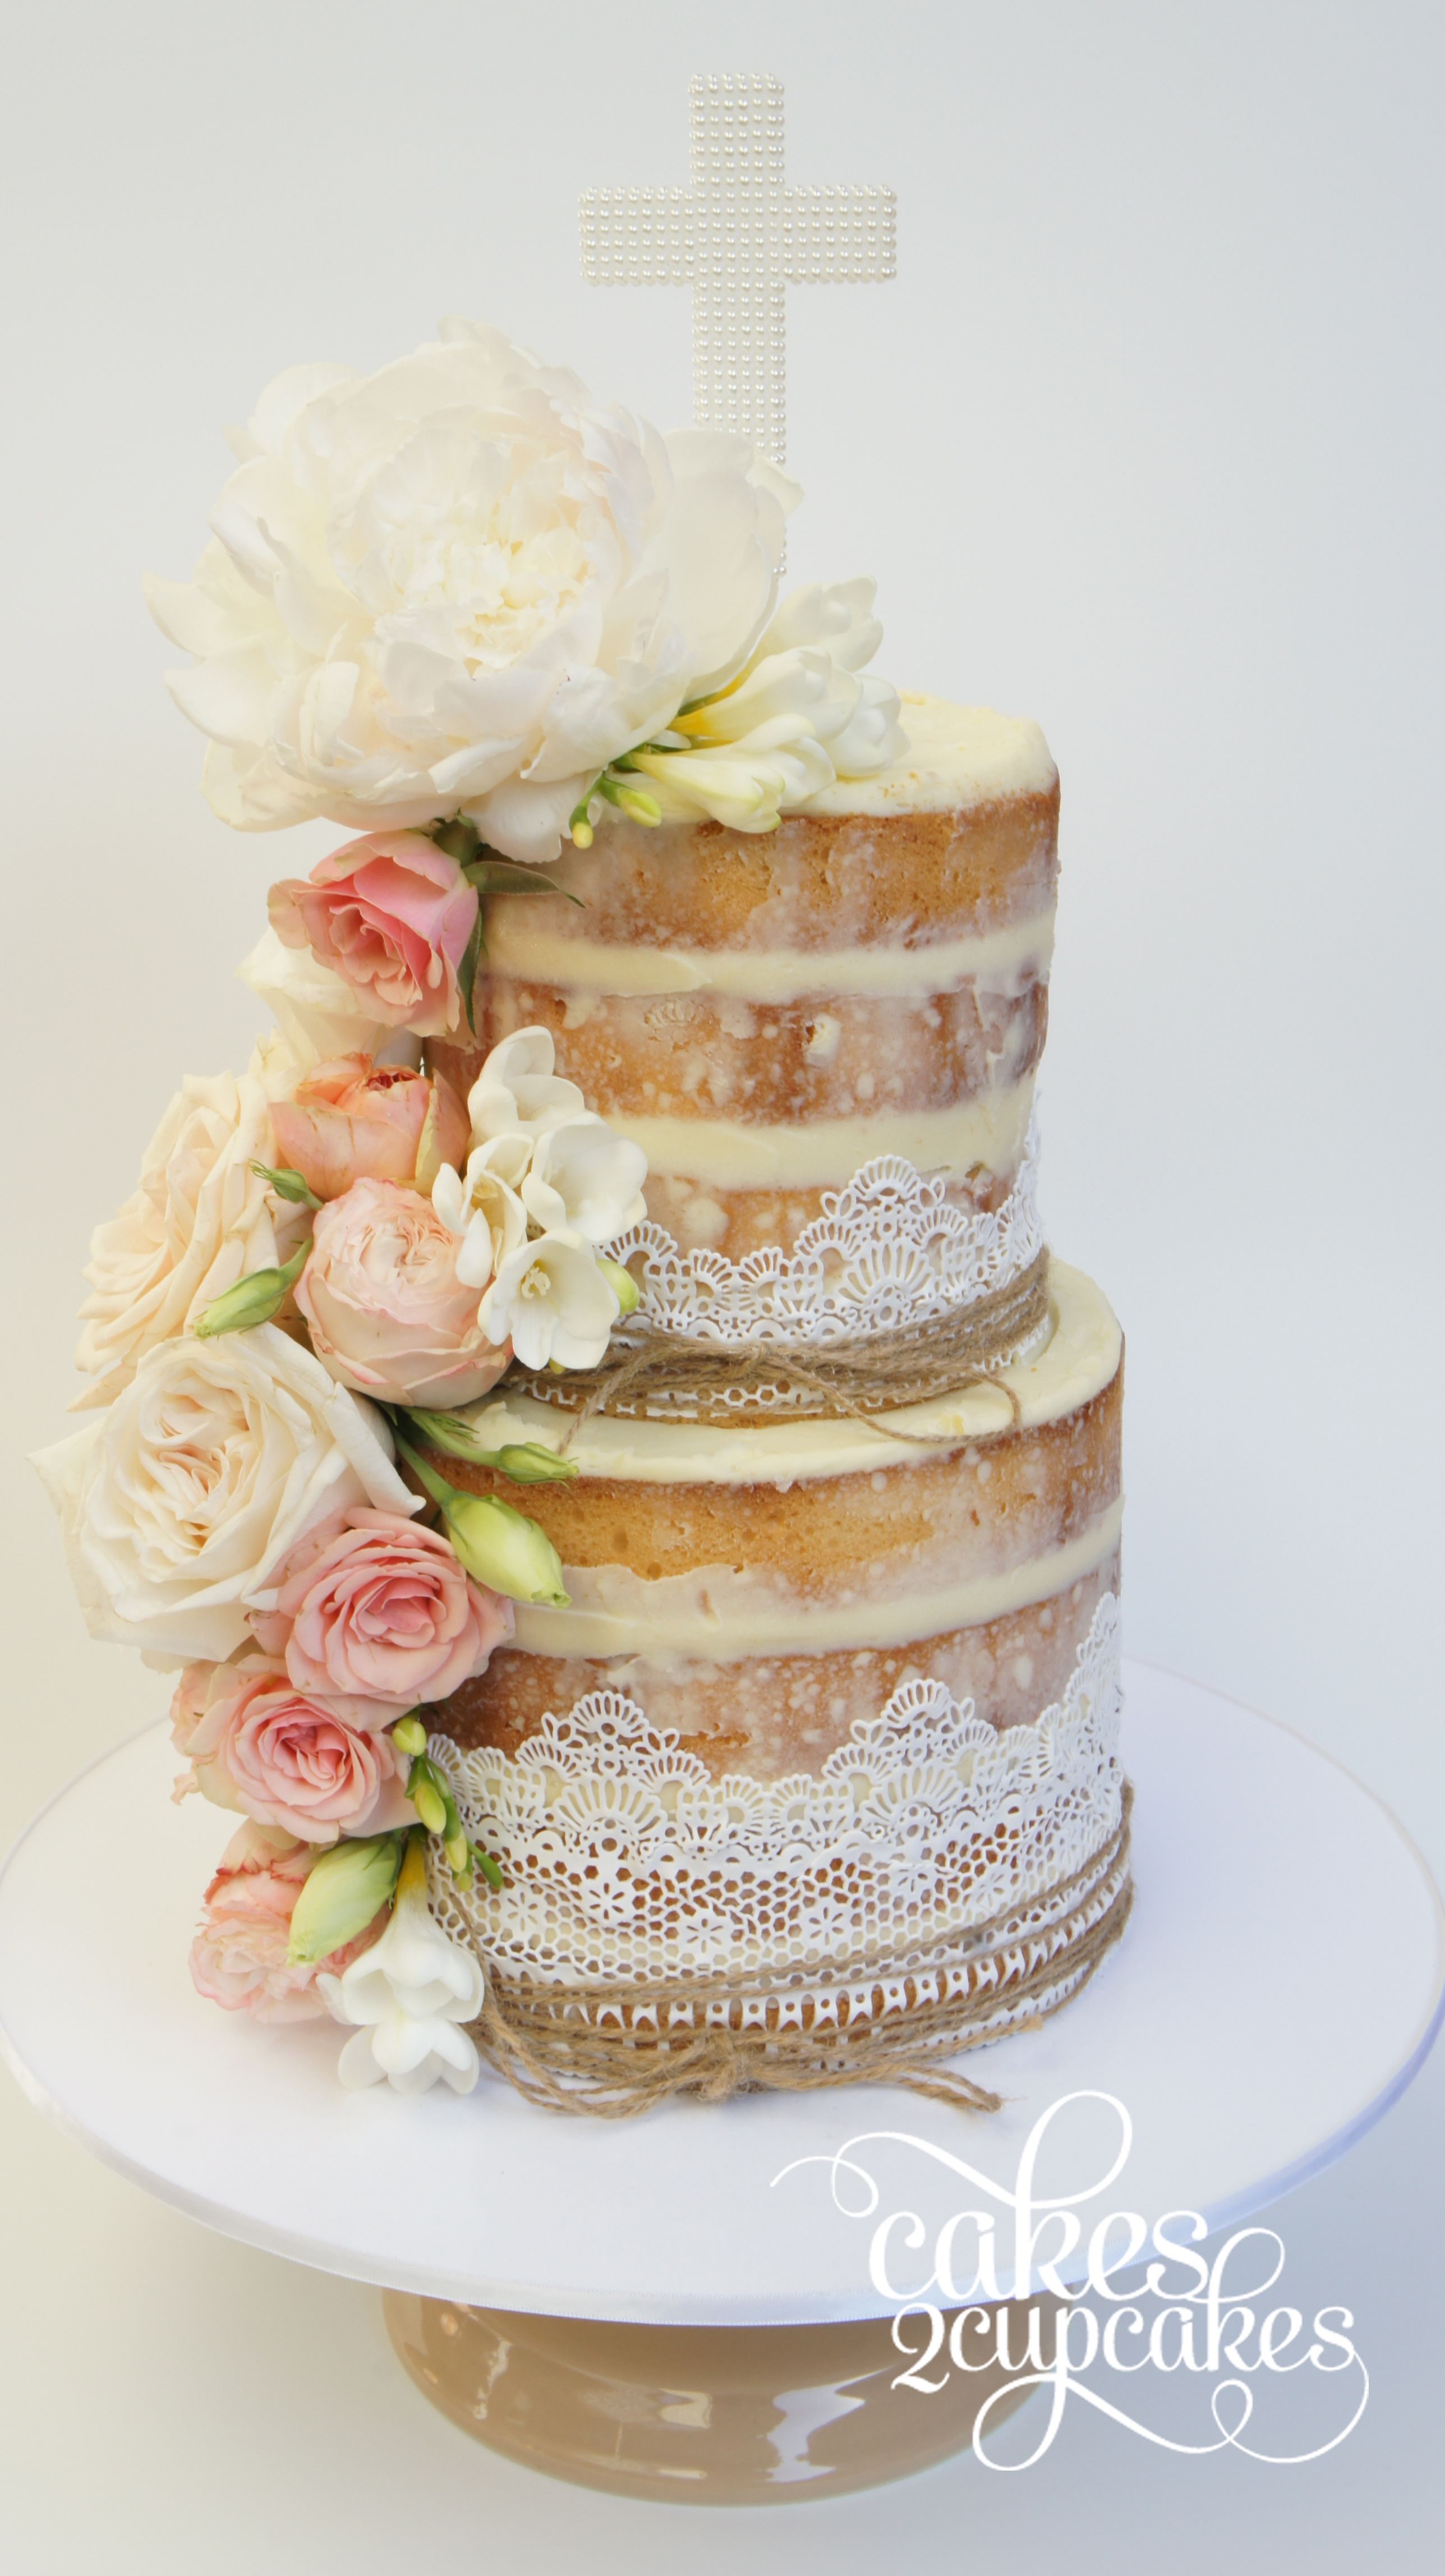 cakes2cupcakes-hessian-lace.jpg